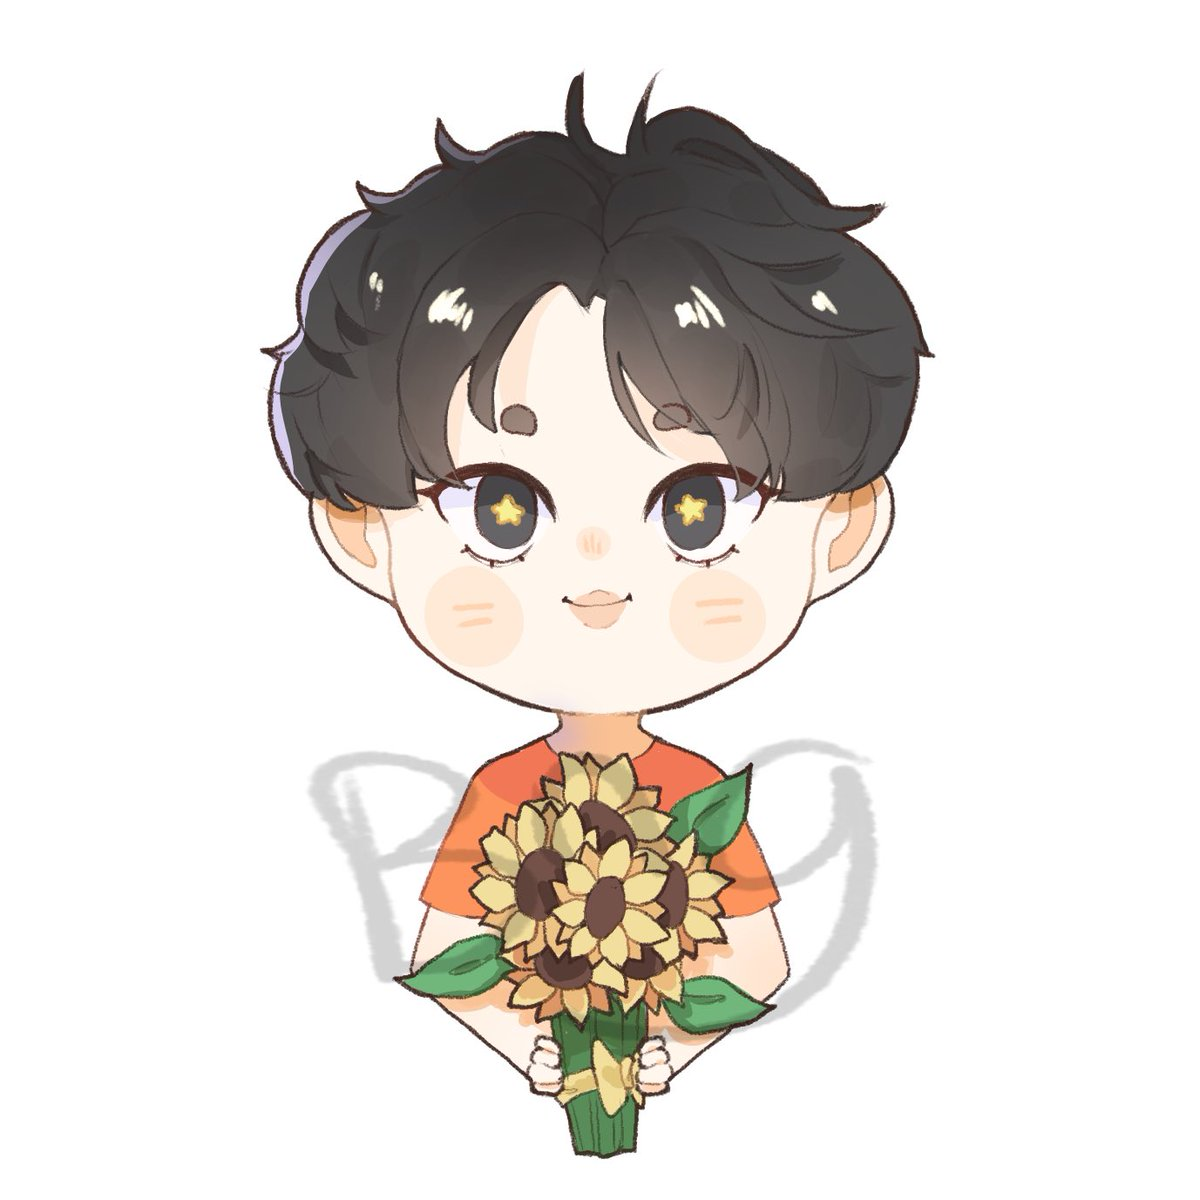 its been a long time since the last time i drew this cutie pie~  sorry for the watermark UwU  original pic by yangmathoy_bb  #Prem #prem_space #Sunflowers #UwU #BnG @Prem_spacepic.twitter.com/LotjKsnaf6